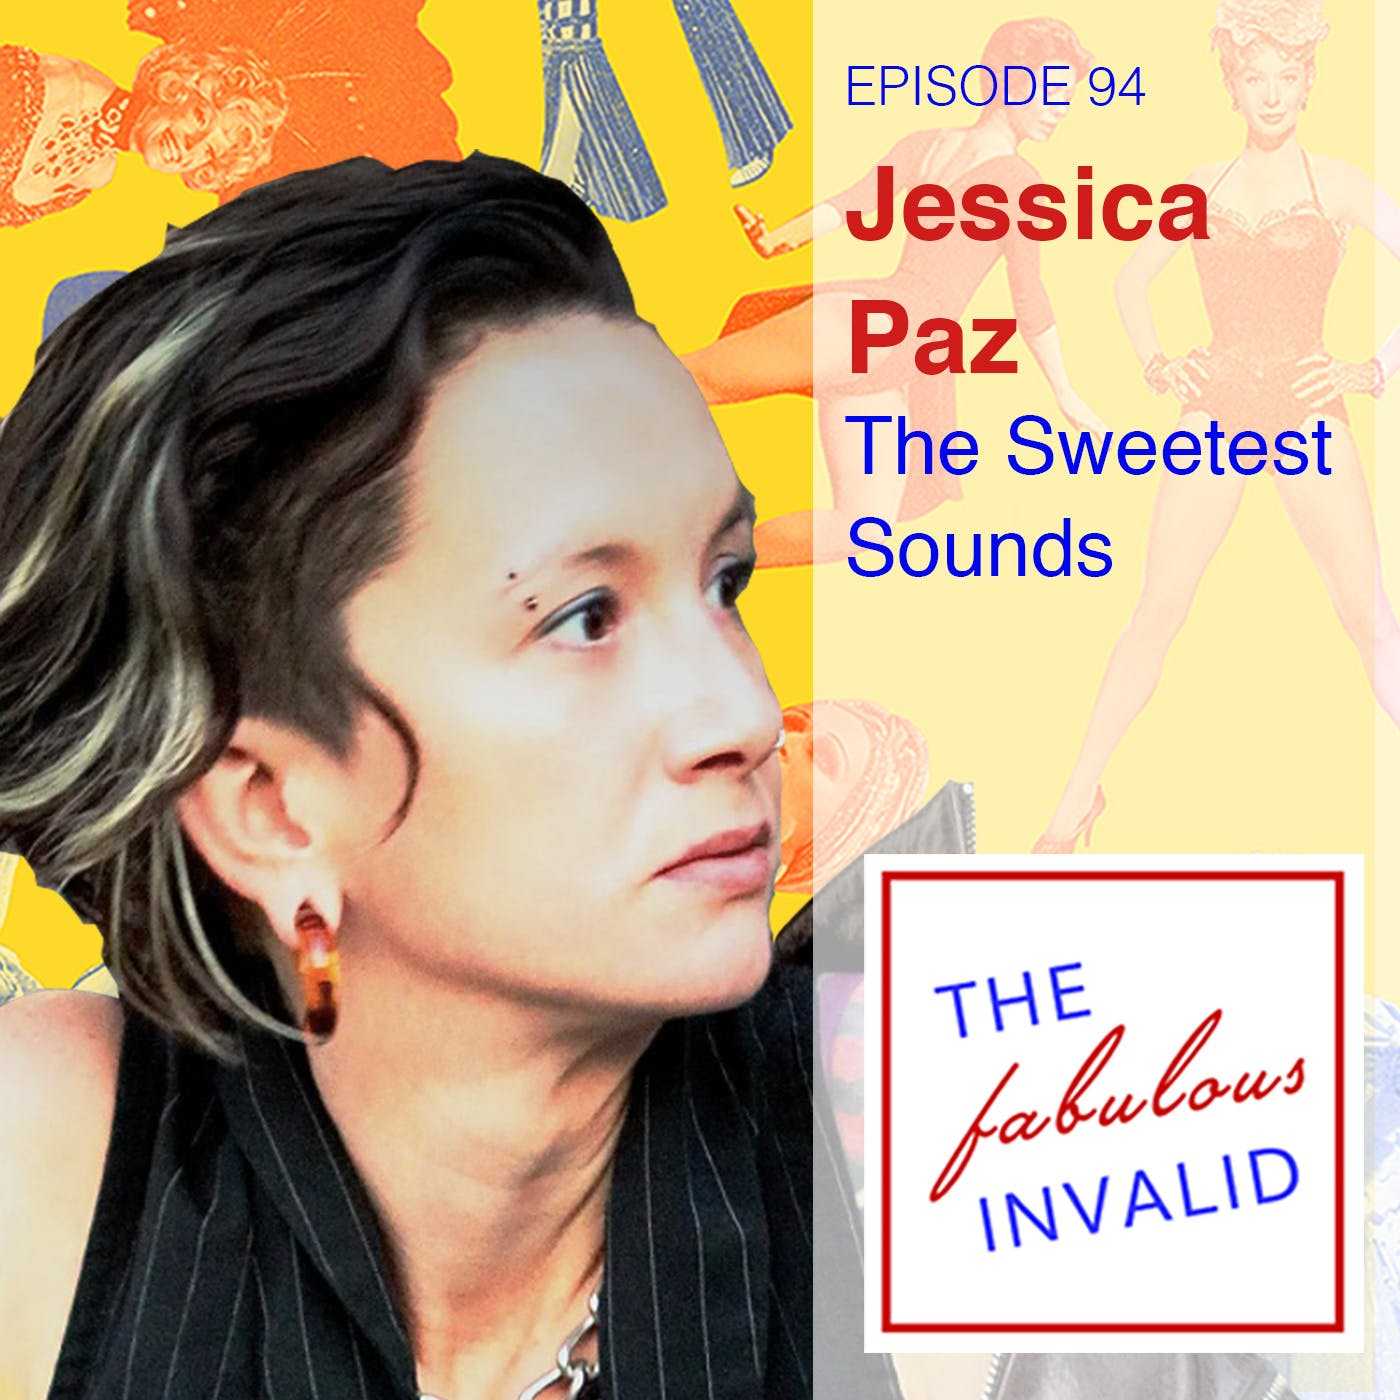 Episode 94: Jessica Paz: The Sweetest Sounds